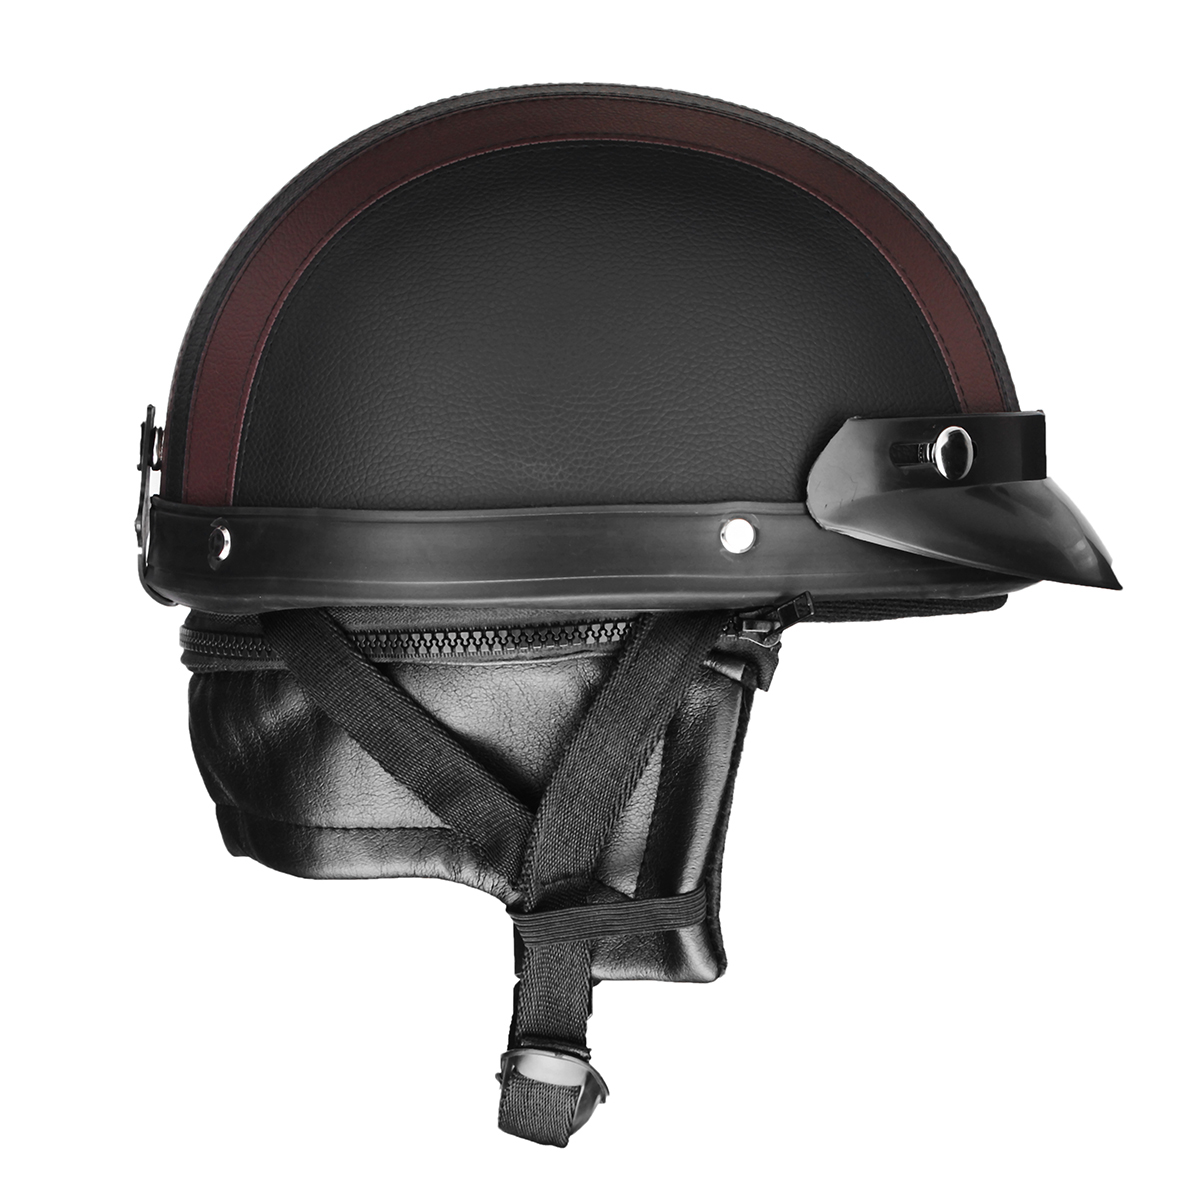 Retro Motorcycle Motor Bike Scooter Half Open Face Helmet Head Protection